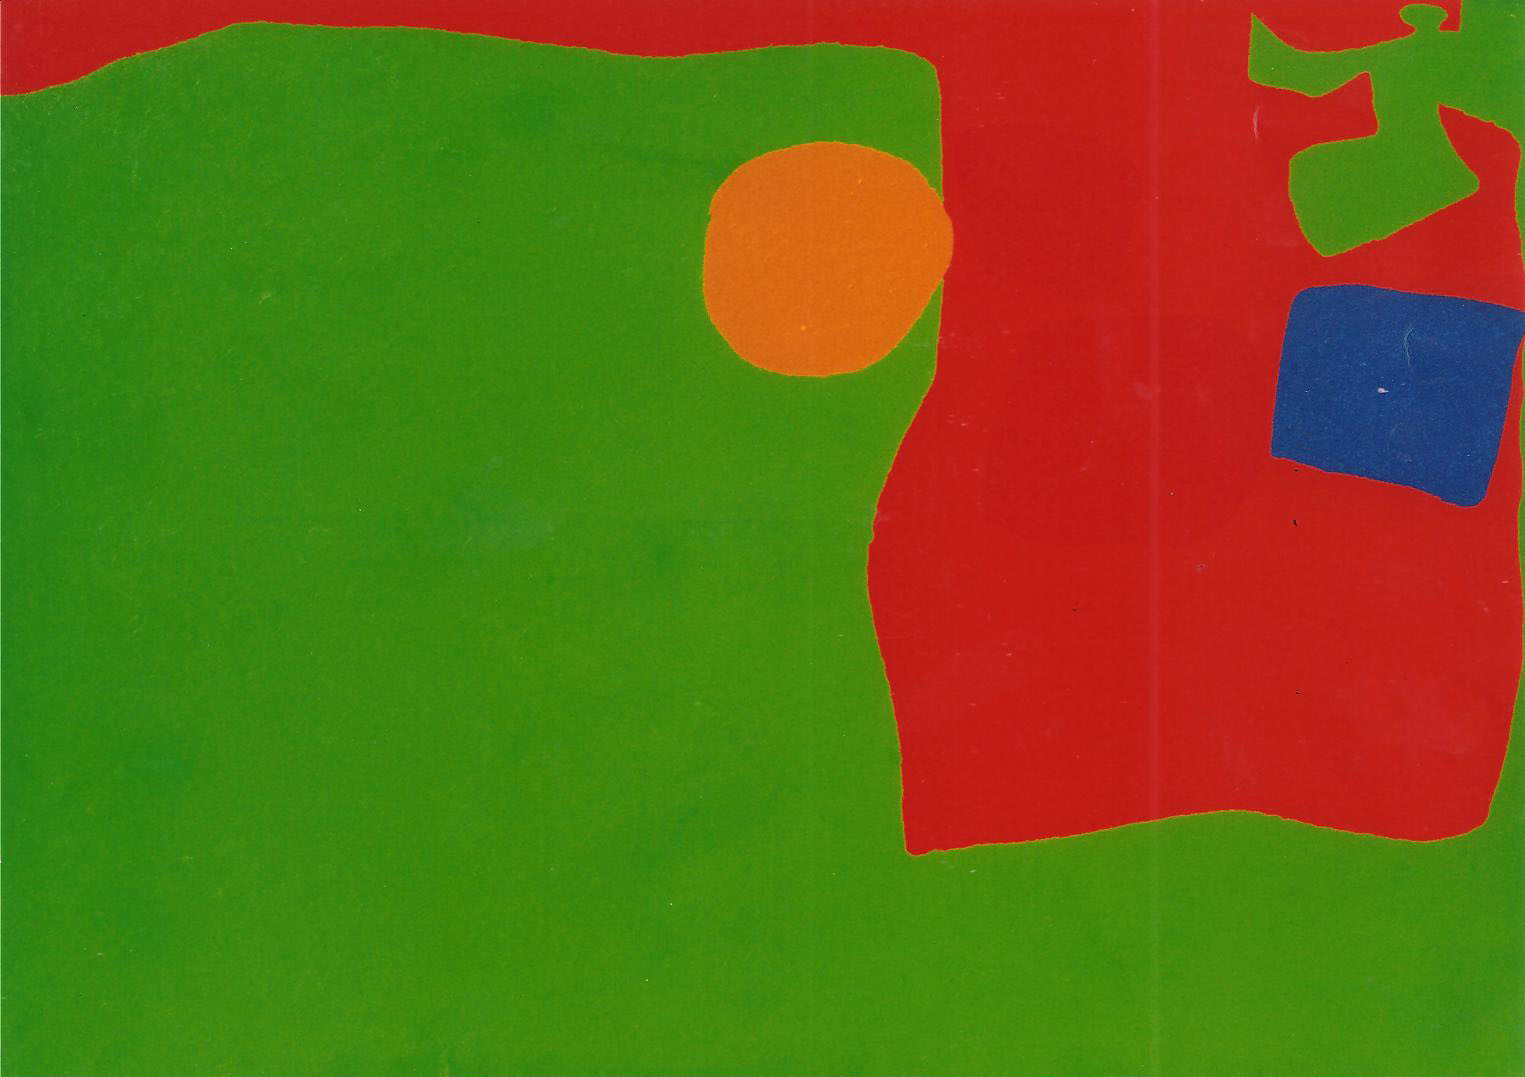 "<span class=""link fancybox-details-link""><a href=""/artists/130-patrick-heron/works/713/"">View Detail Page</a></span><div class=""artist""><strong>Patrick Heron</strong></div> 1920-1999 <div class=""title""><em>Emerald with Reds and Cerulean</em></div> <div class=""signed_and_dated"">signed, titled verso, dated 1977</div> <div class=""medium"">oil on canvas</div> <div class=""dimensions"">152.5 x 213.5 cms (60 x 84 ins)</div>"